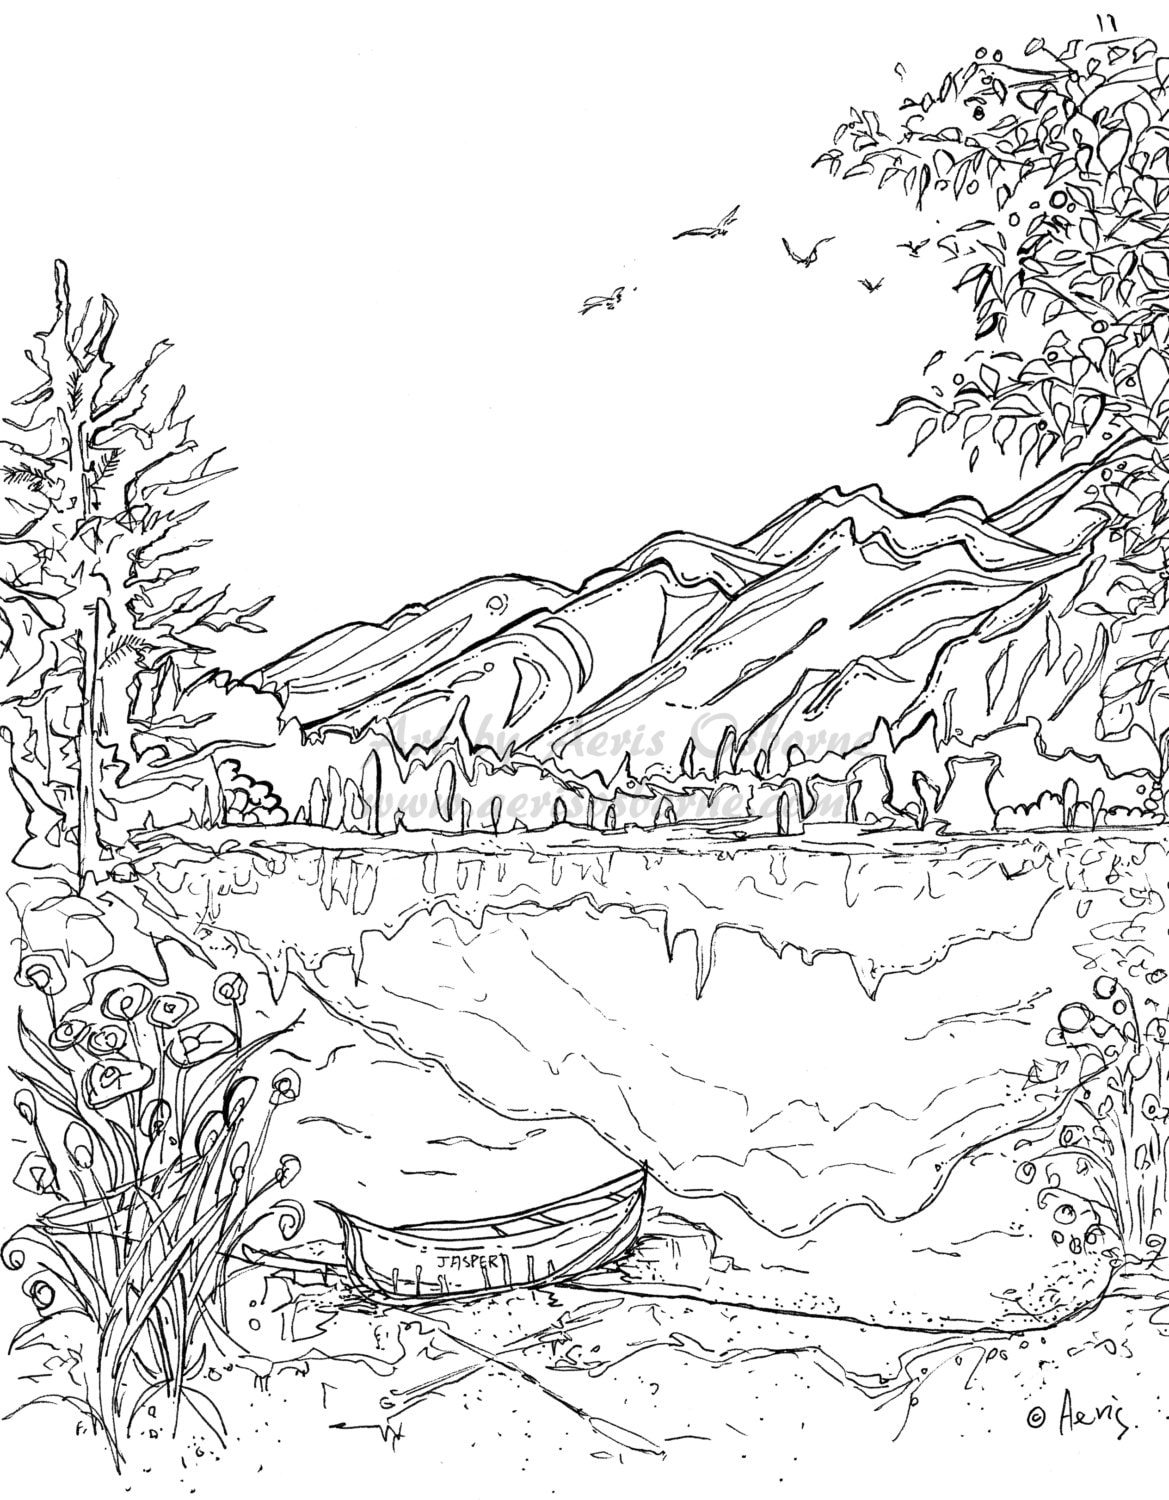 Landscape Coloring Pages Serenity Jasper Landscape Printable Coloring Page Canoe